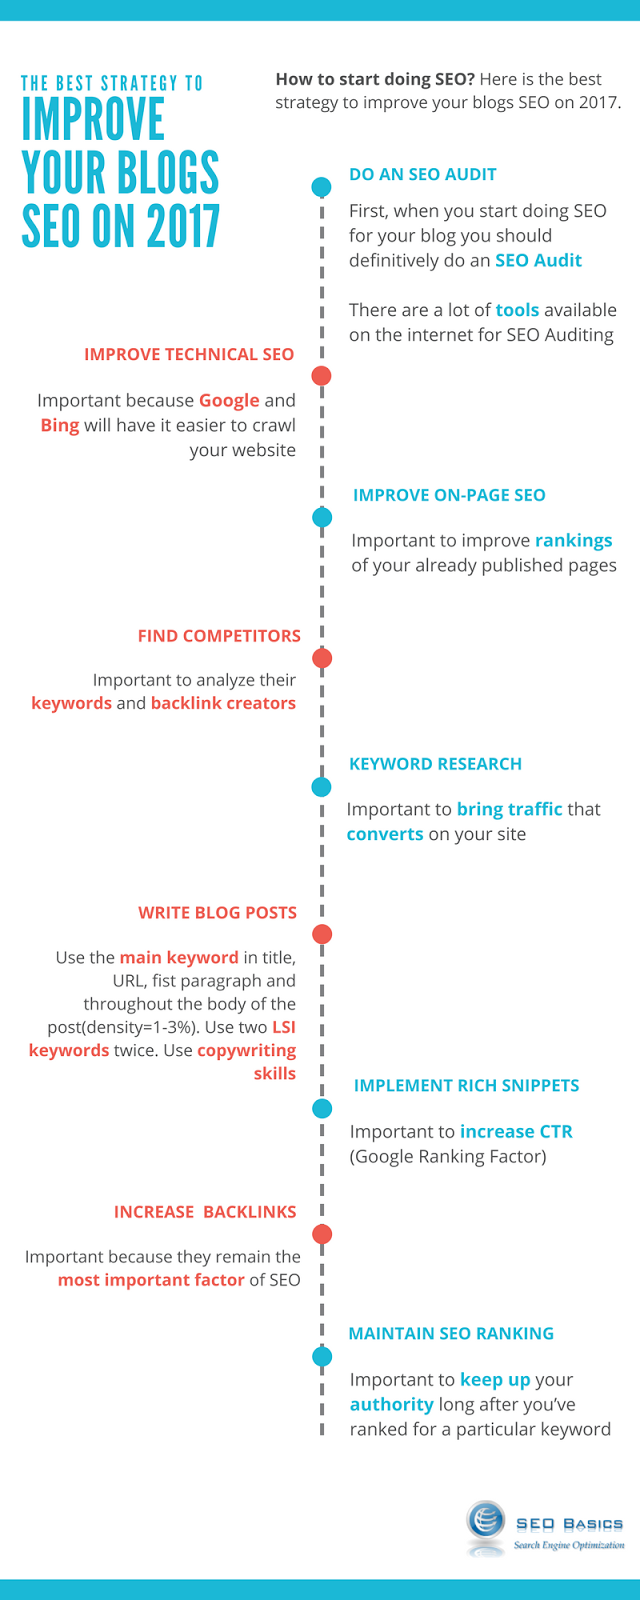 SEO Consulting Services, News & Blog - SEO Basics: The Best Strategy To Improve Your Blogs SEO on 2019 [ Infographic ]